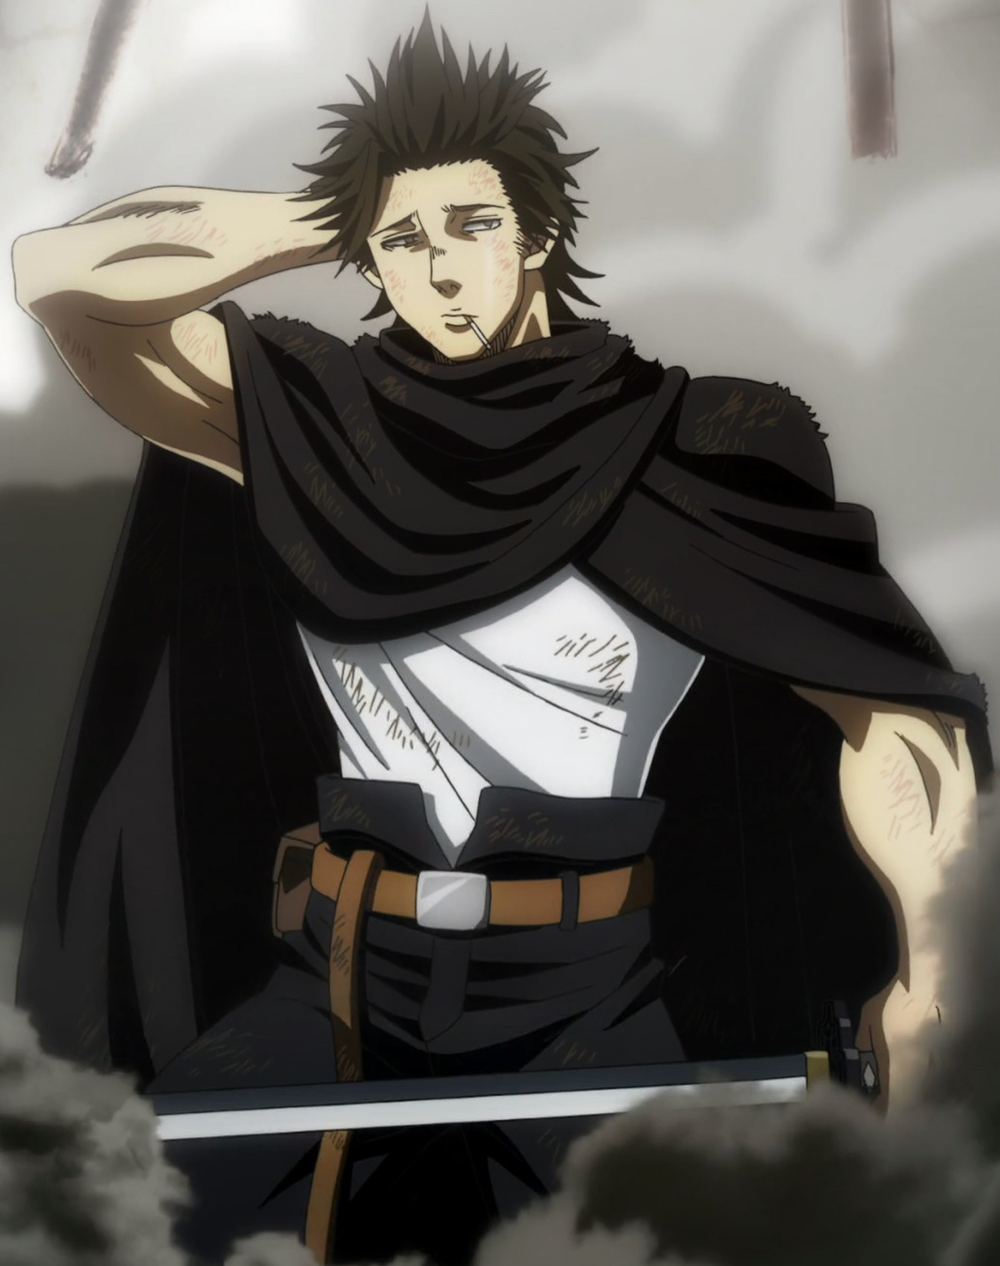 An Undisputed Badass Captain Yummy I Mean Yami Haha Black Clover Anime Black Clover Manga Black Bull